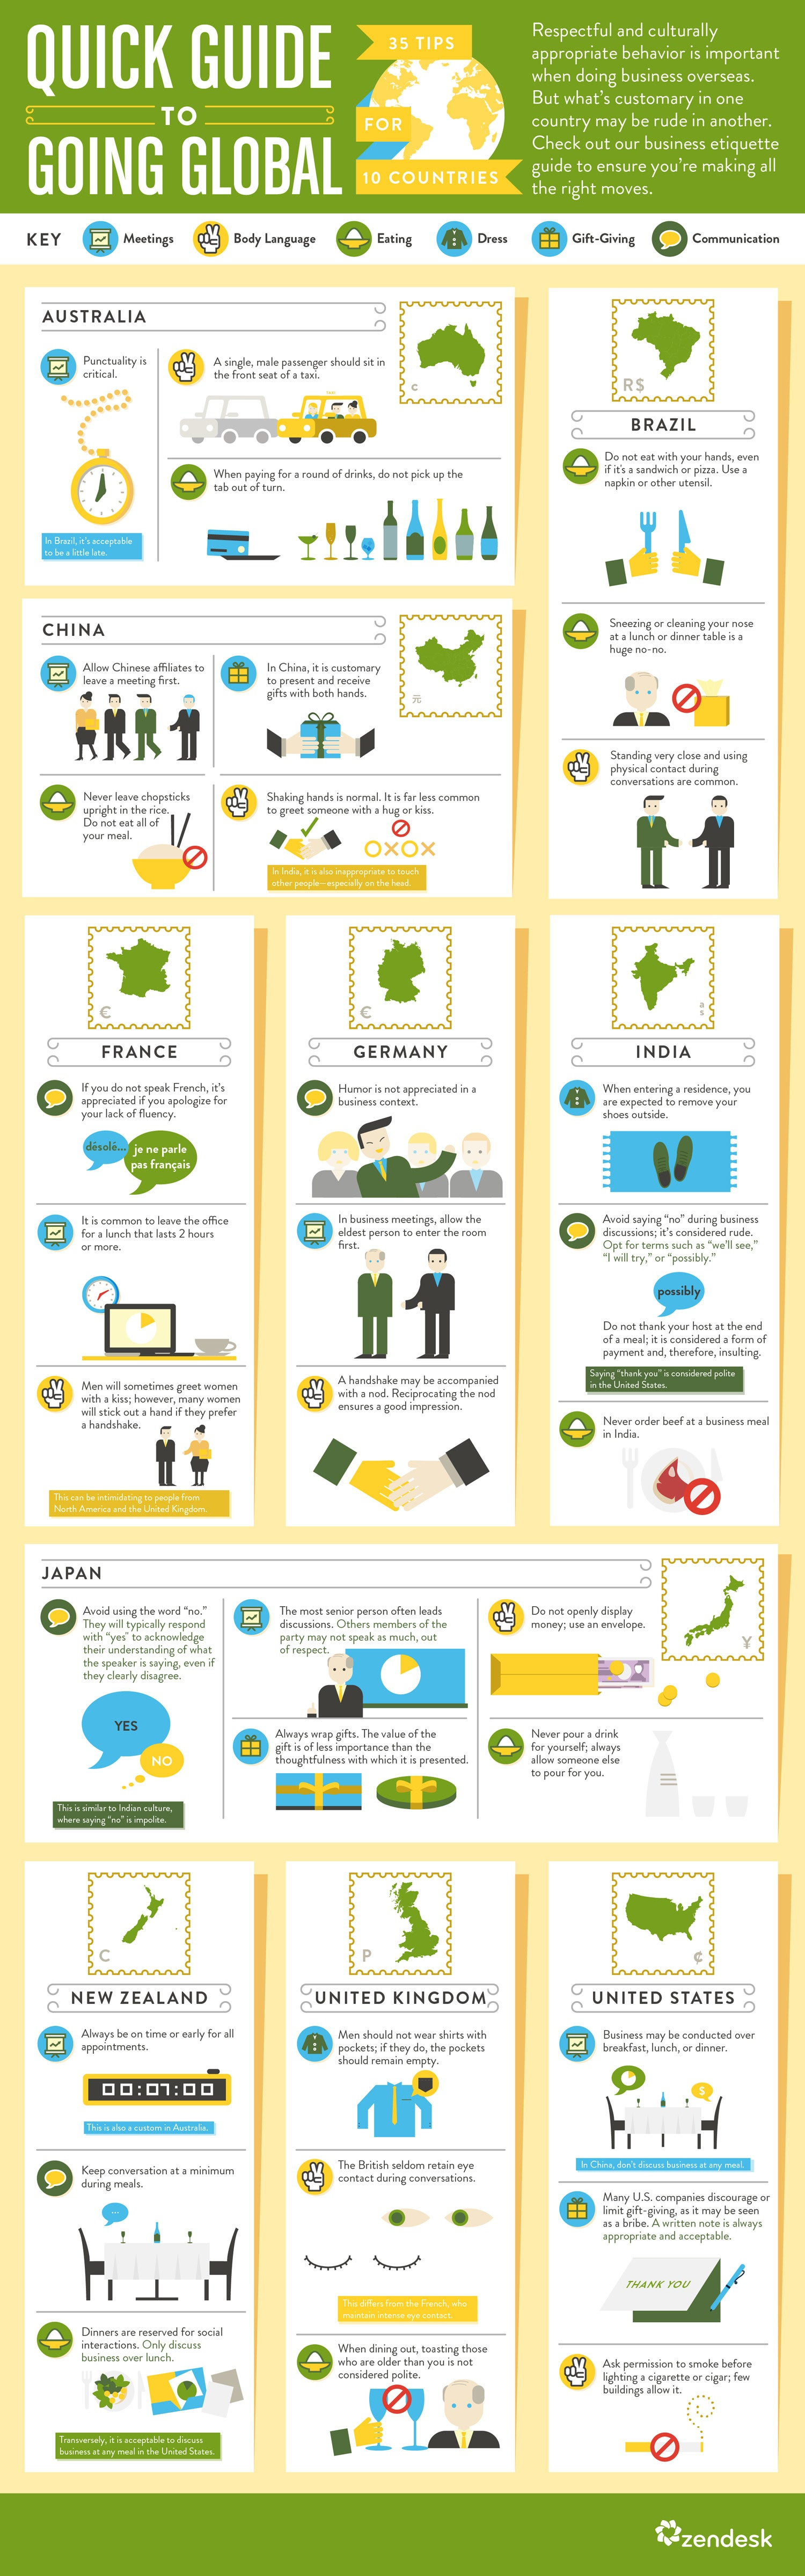 35 Tips on How Not to Offend Your International Business Partners (Infographic)